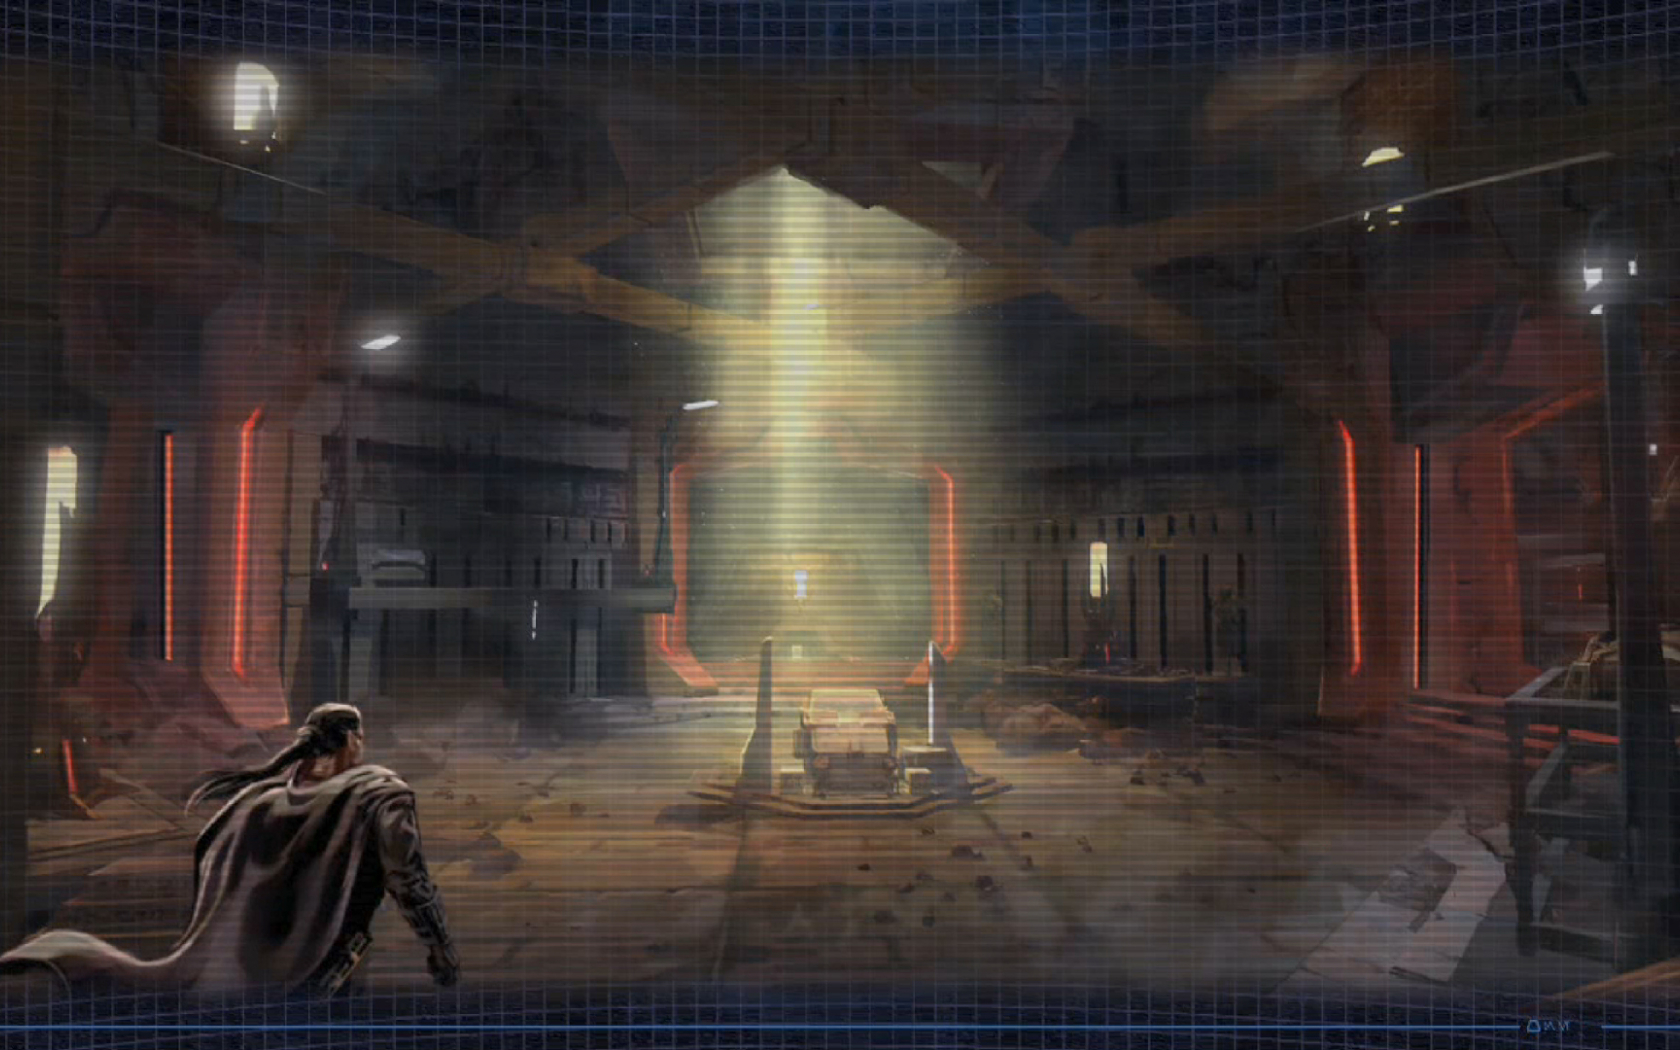 Free Download Jedi Temple Wallpaper Exar Kun In Sith Temple 1 1920x1080 For Your Desktop Mobile Tablet Explore 48 Jedi Temple Wallpaper Star Wars Jedi Wallpaper Hd Jedi Knight